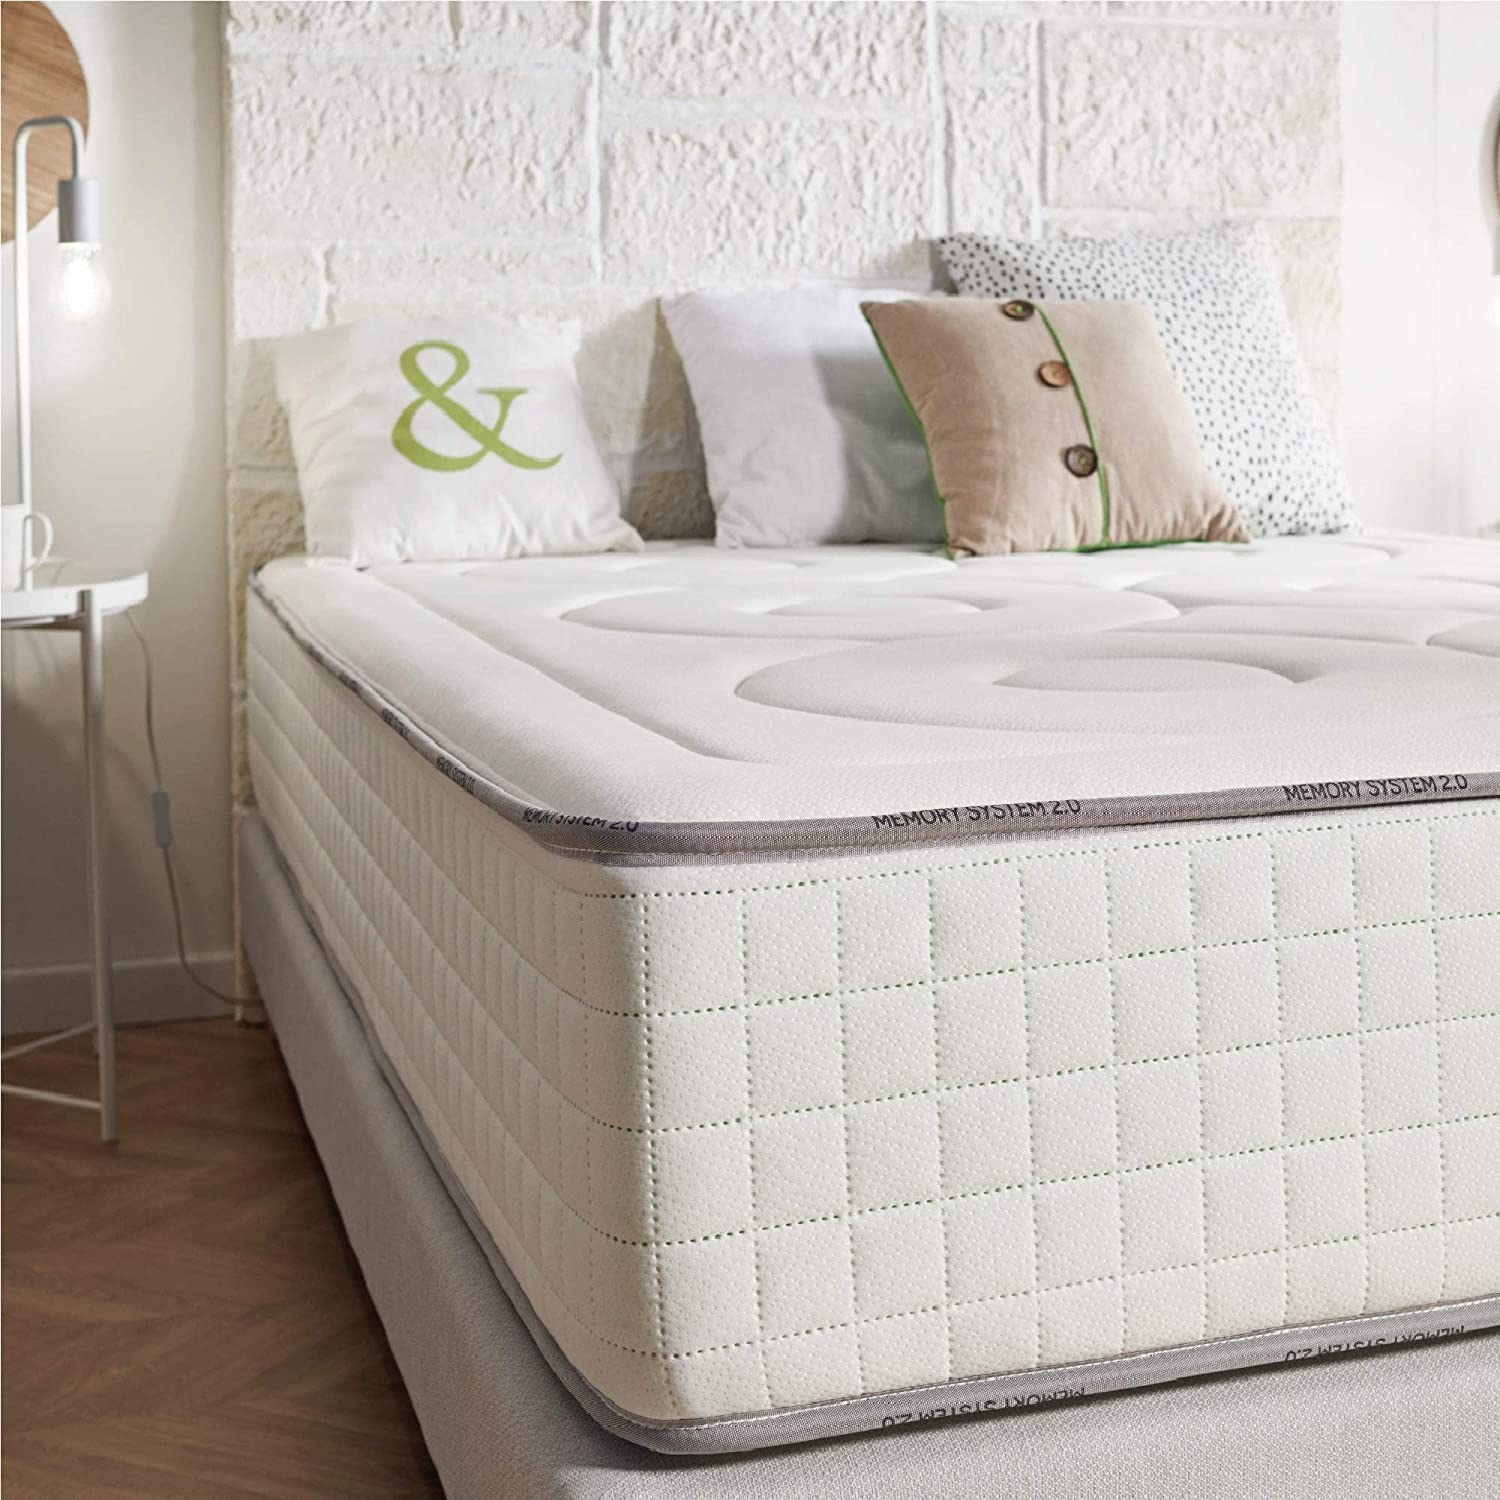 naturalex Memory S 5ft King Size 150x200cm Latex and Multi-Density Memory Regulates Body Temperature for a Cleaner Fresher Sleep Certified Materials High Format Memory Foam Mattress